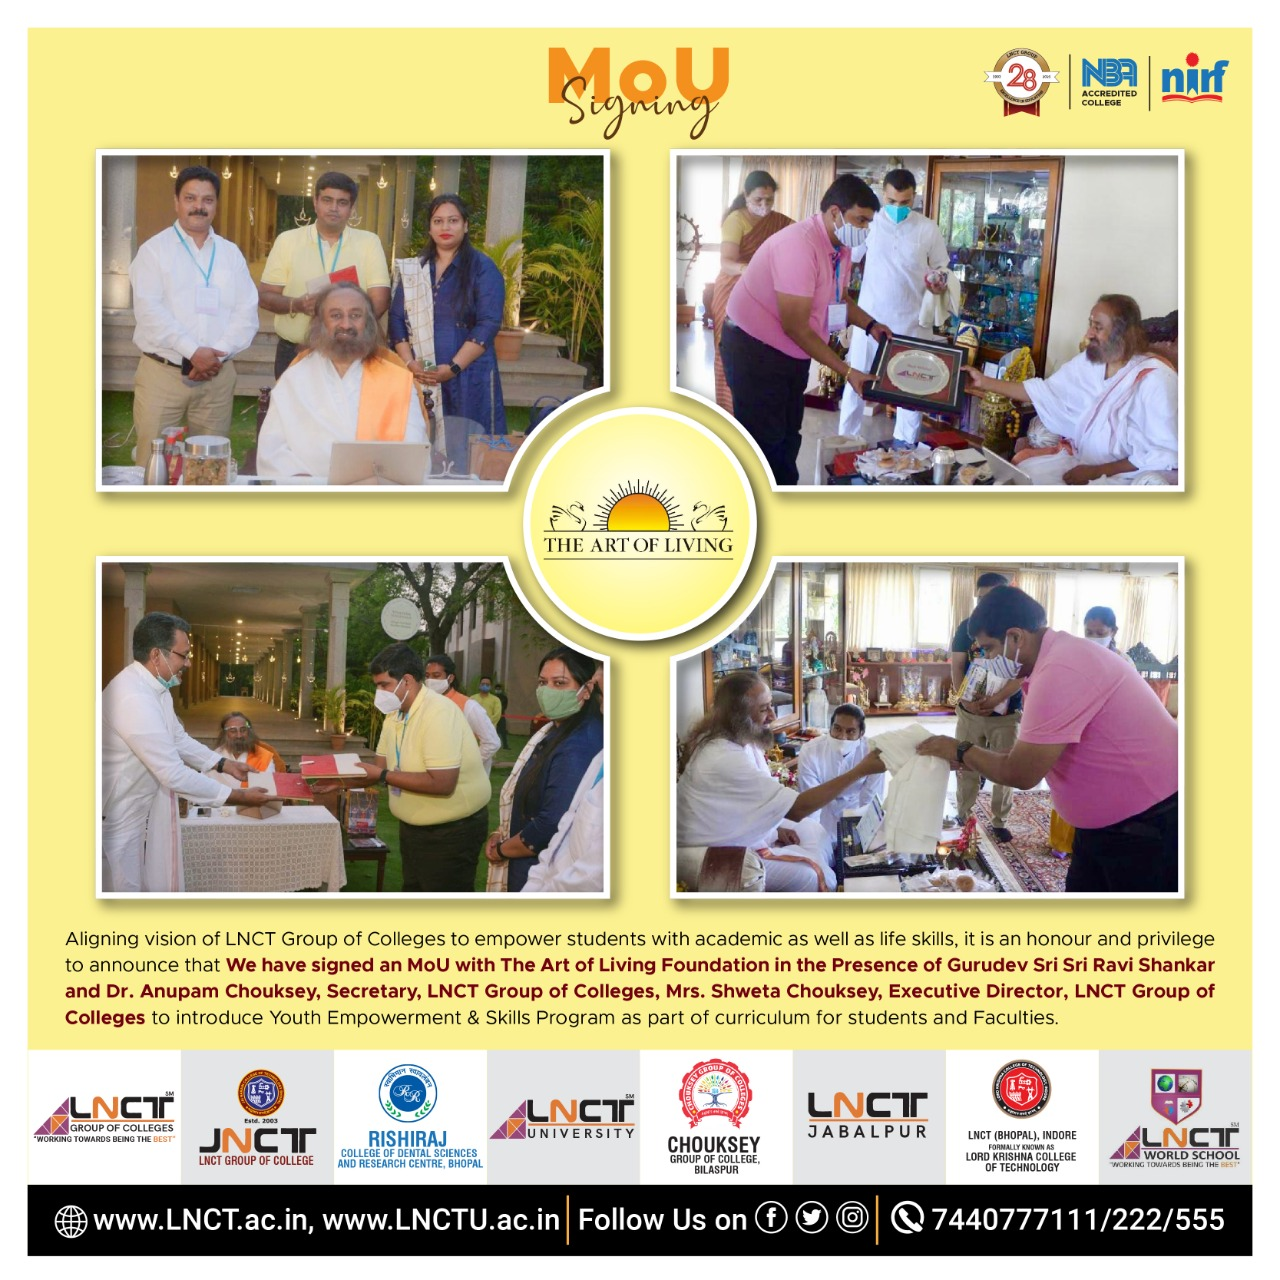 Signed an MoU with The Art of Living Foundation 1